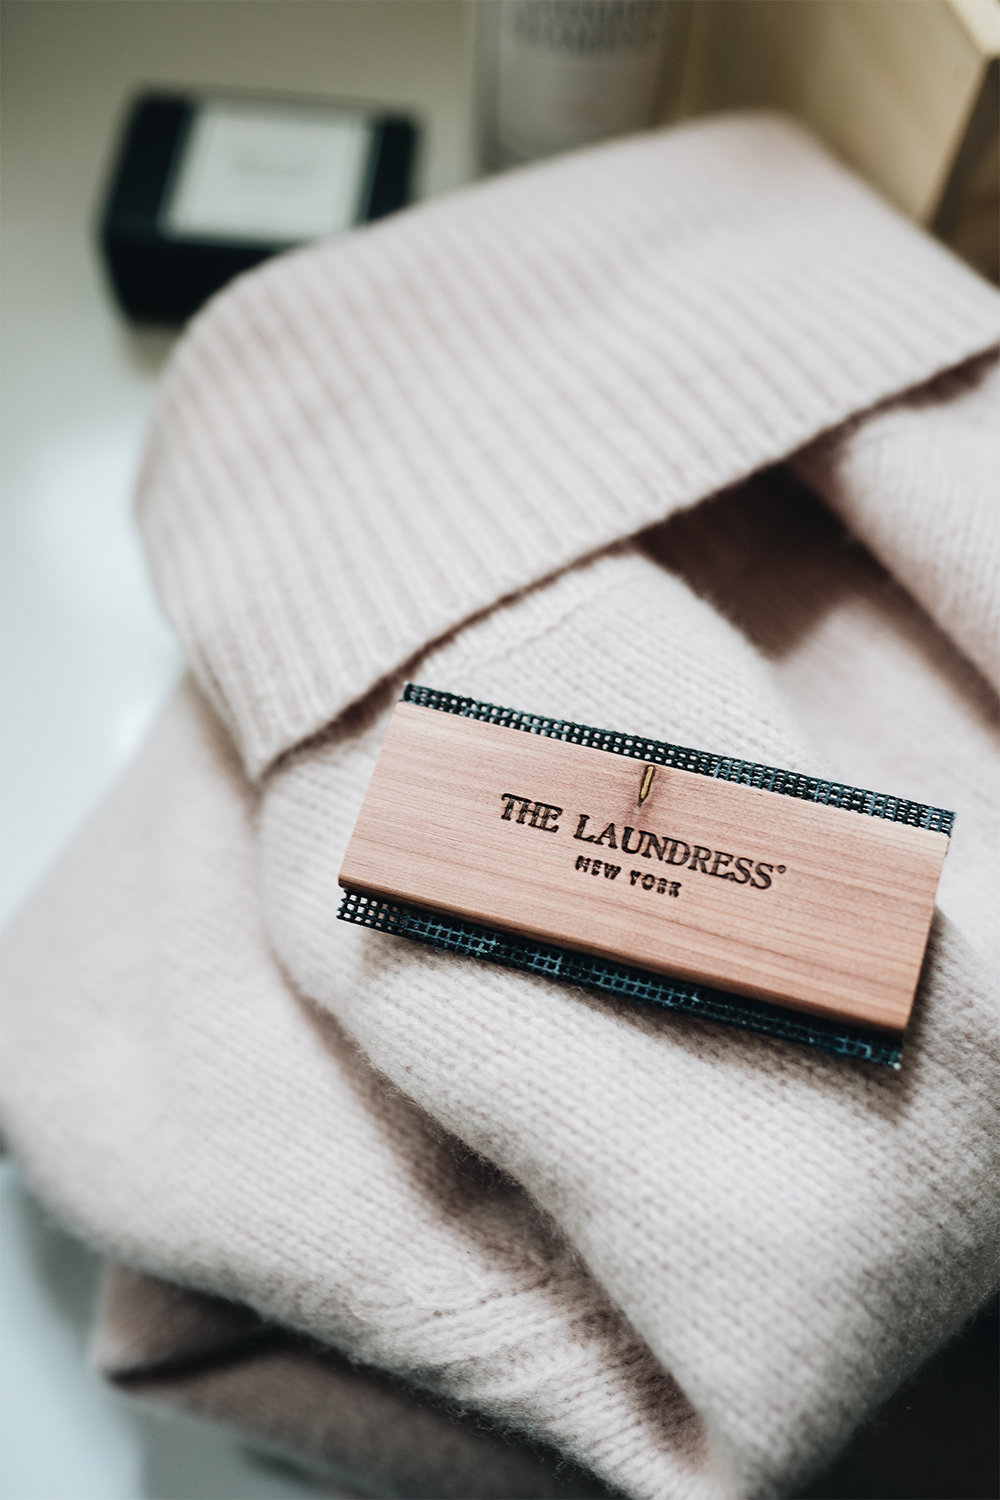 The Laudress Sweater Comb   The Laundress sweater comb easily removes pills from lightweight knitwear. Metal screens and cedar wood handle.